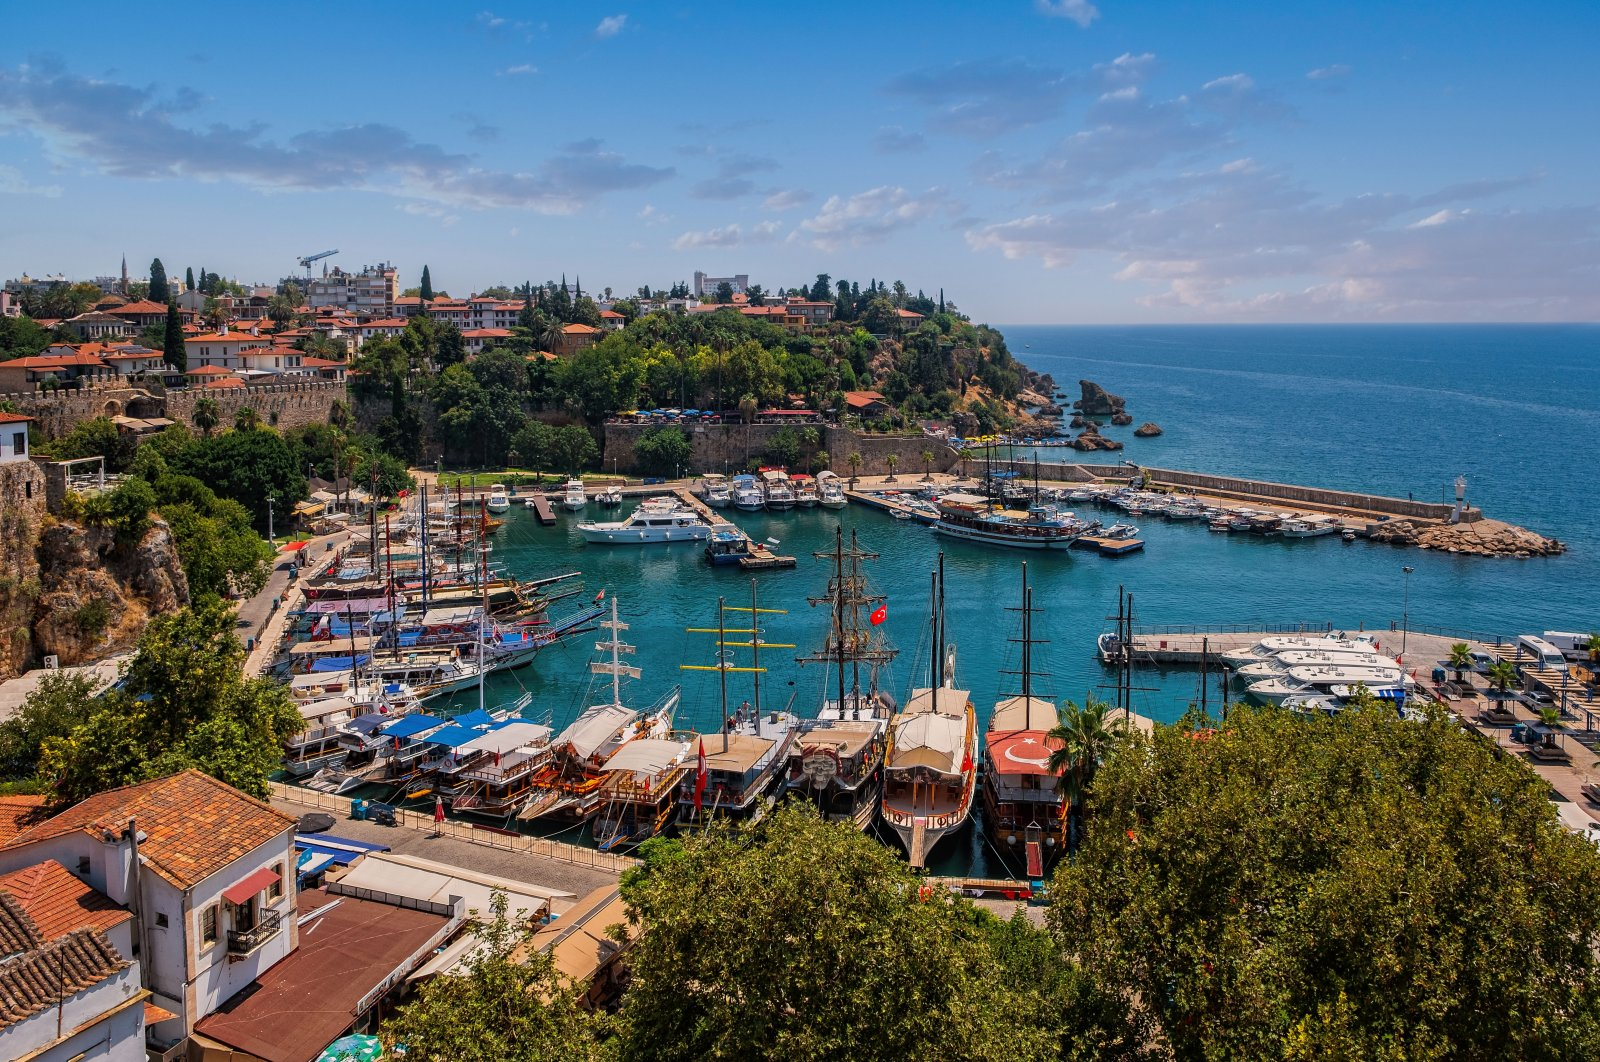 A view from the old harbor in historic city center Kaleiçi of Antalya, southern Turkey, Aug. 2020. (Shutterstock Photo)